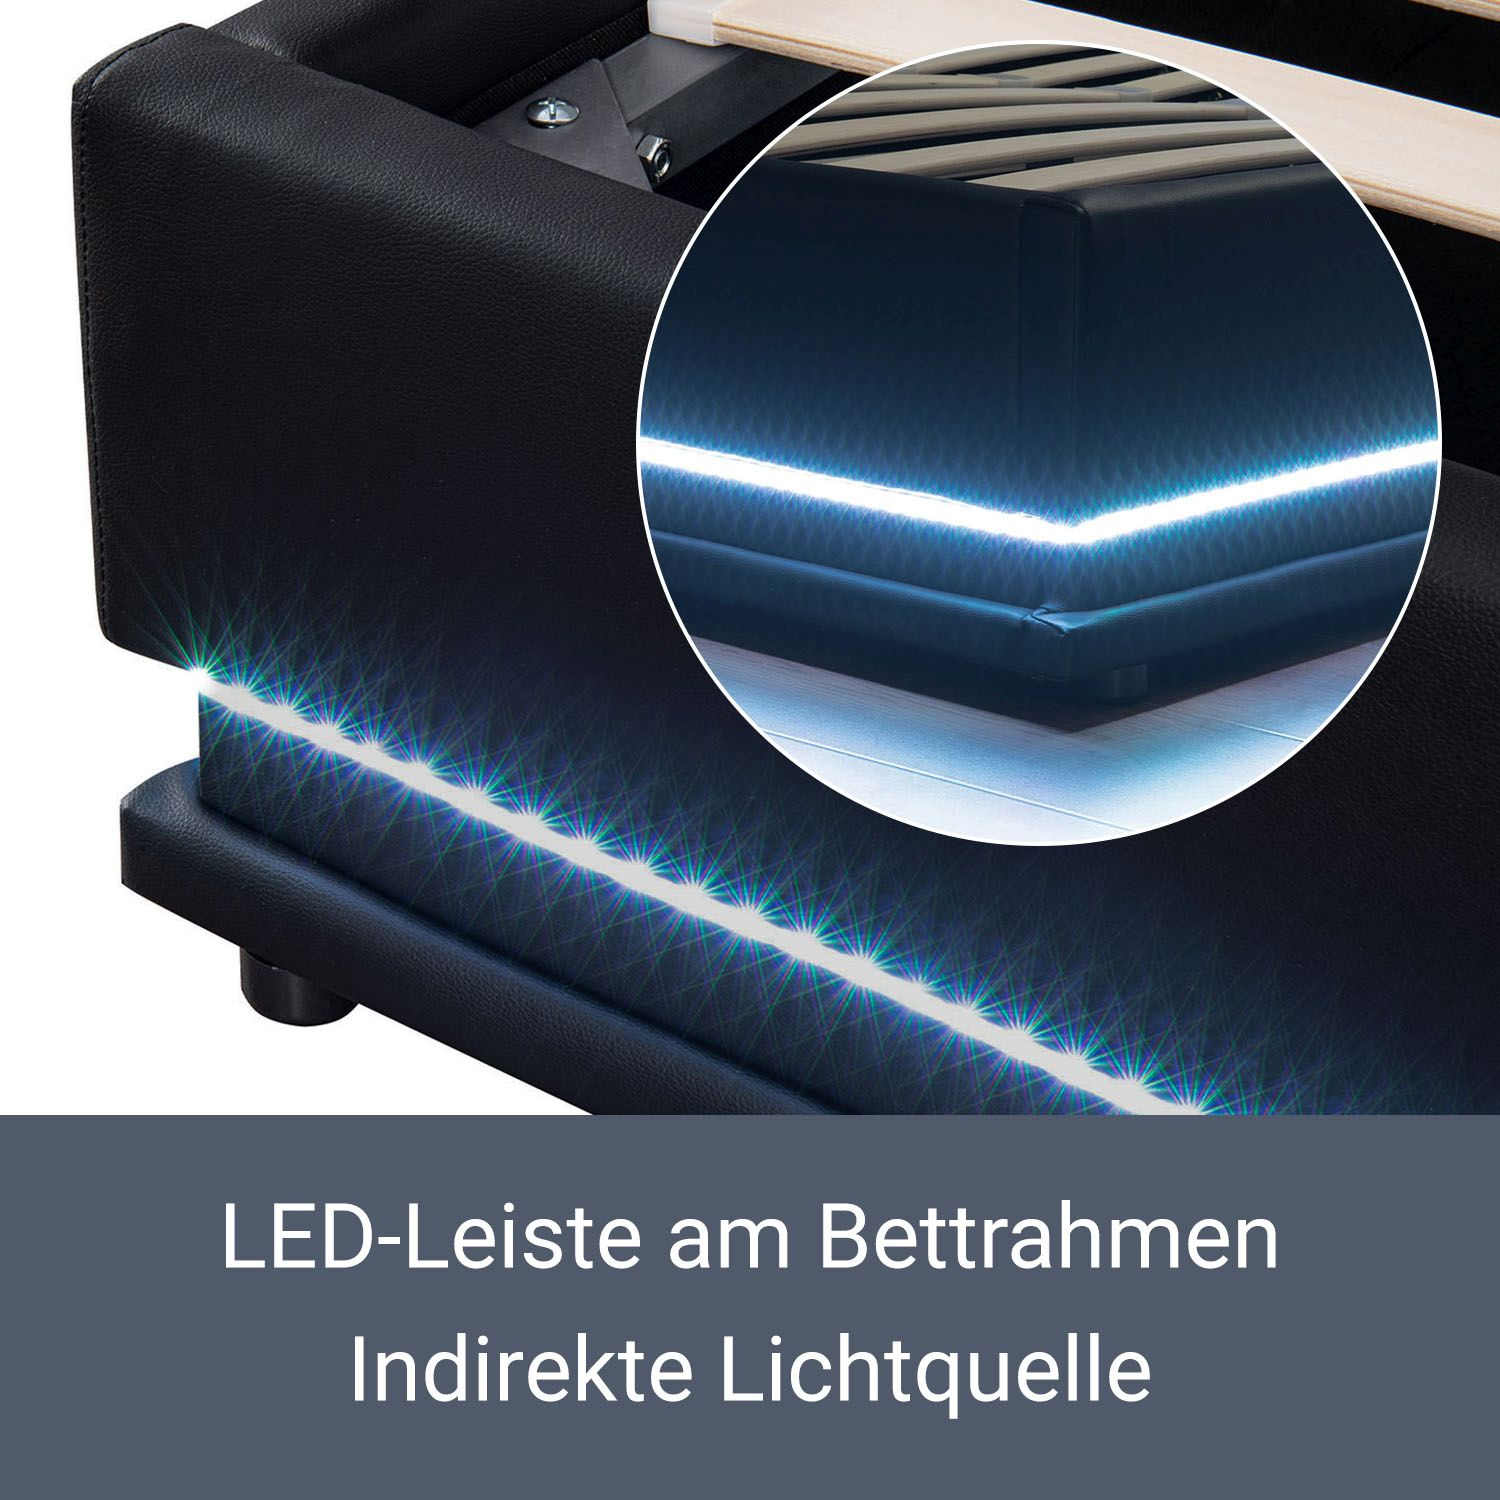 polsterbett kunstlederbett mit led bettkasten bettgestell matratze 140 x 200 cm ebay. Black Bedroom Furniture Sets. Home Design Ideas